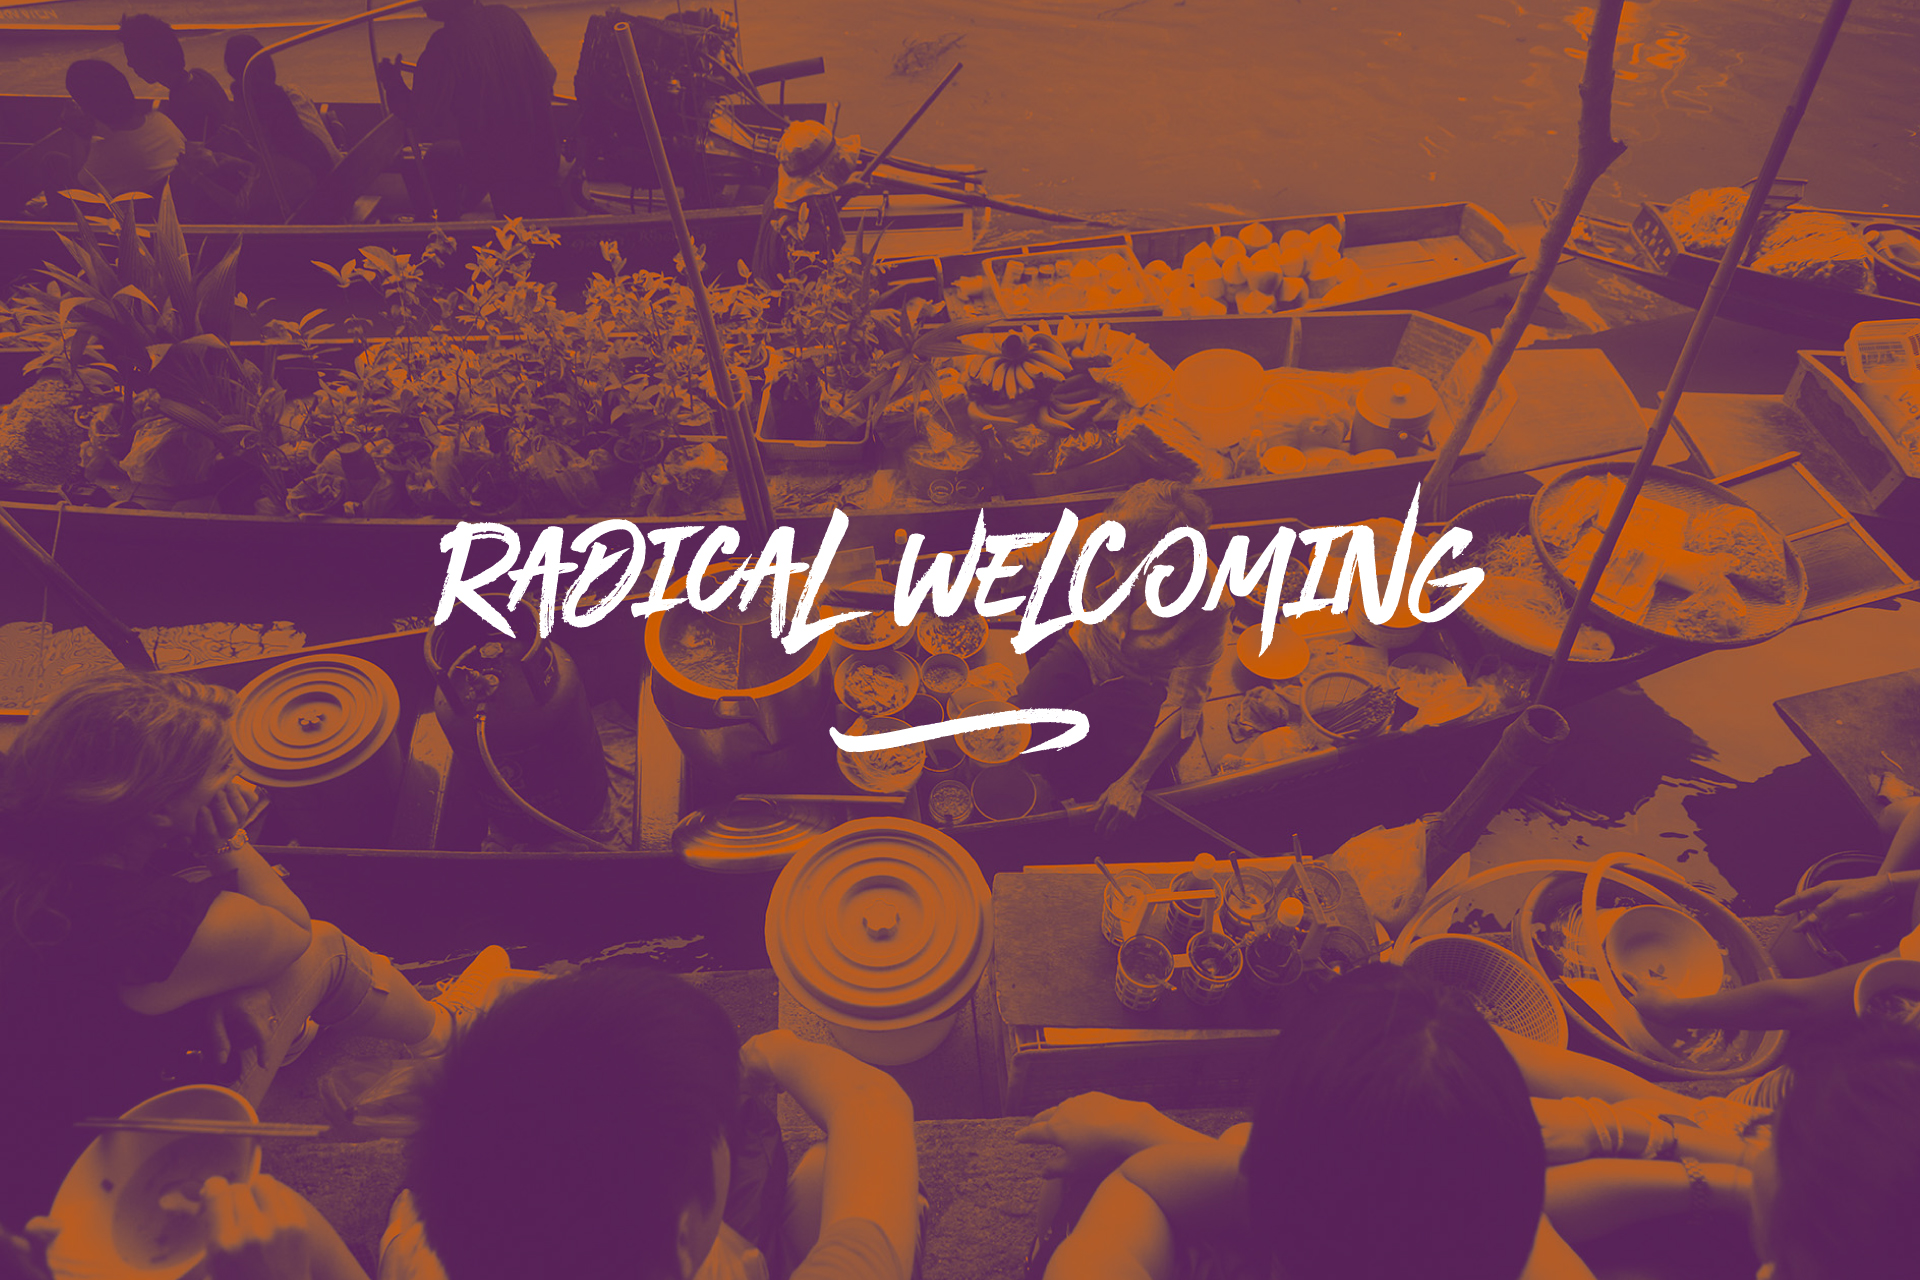 We share a nomadic nature and therefore we are at home anywhere.This requires an overall belief in radical welcoming. Newropa is too dense and fluid to insist or rely on borders. We want to have open arms,minds and hearts beyond borders. We are whole-heartedly open and foster  [Radical Welcoming] .